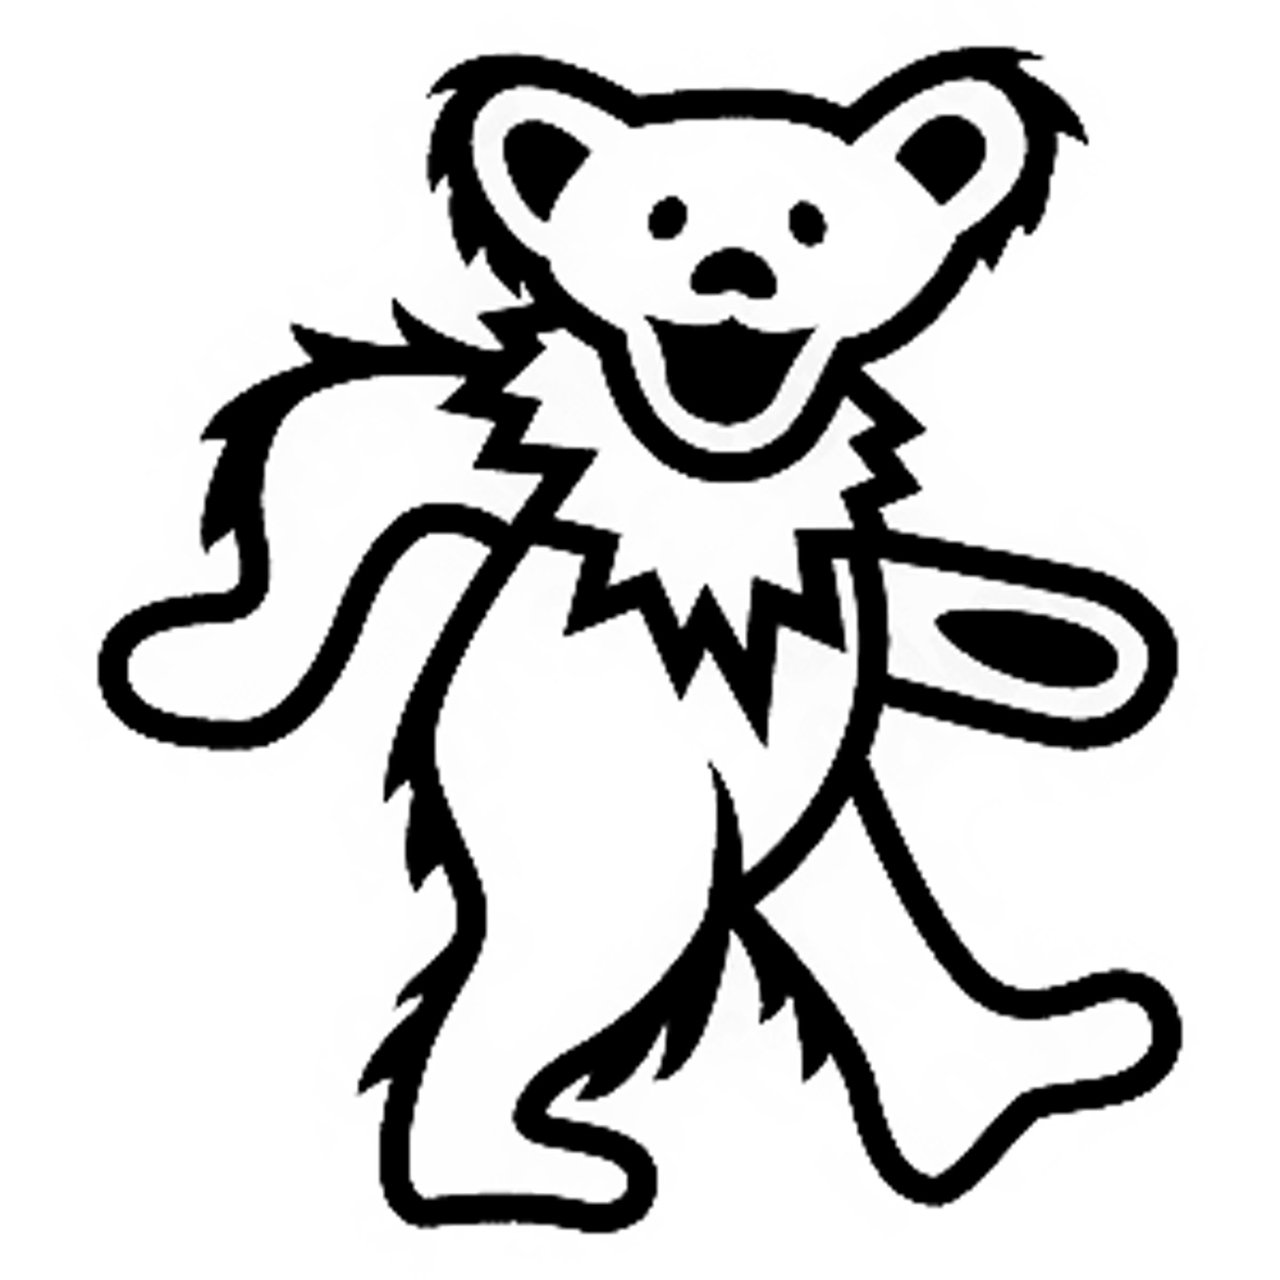 Dead bear clipart jpg freeuse stock Grateful Dead Dancing Bear - Henna Caravan jpg freeuse stock